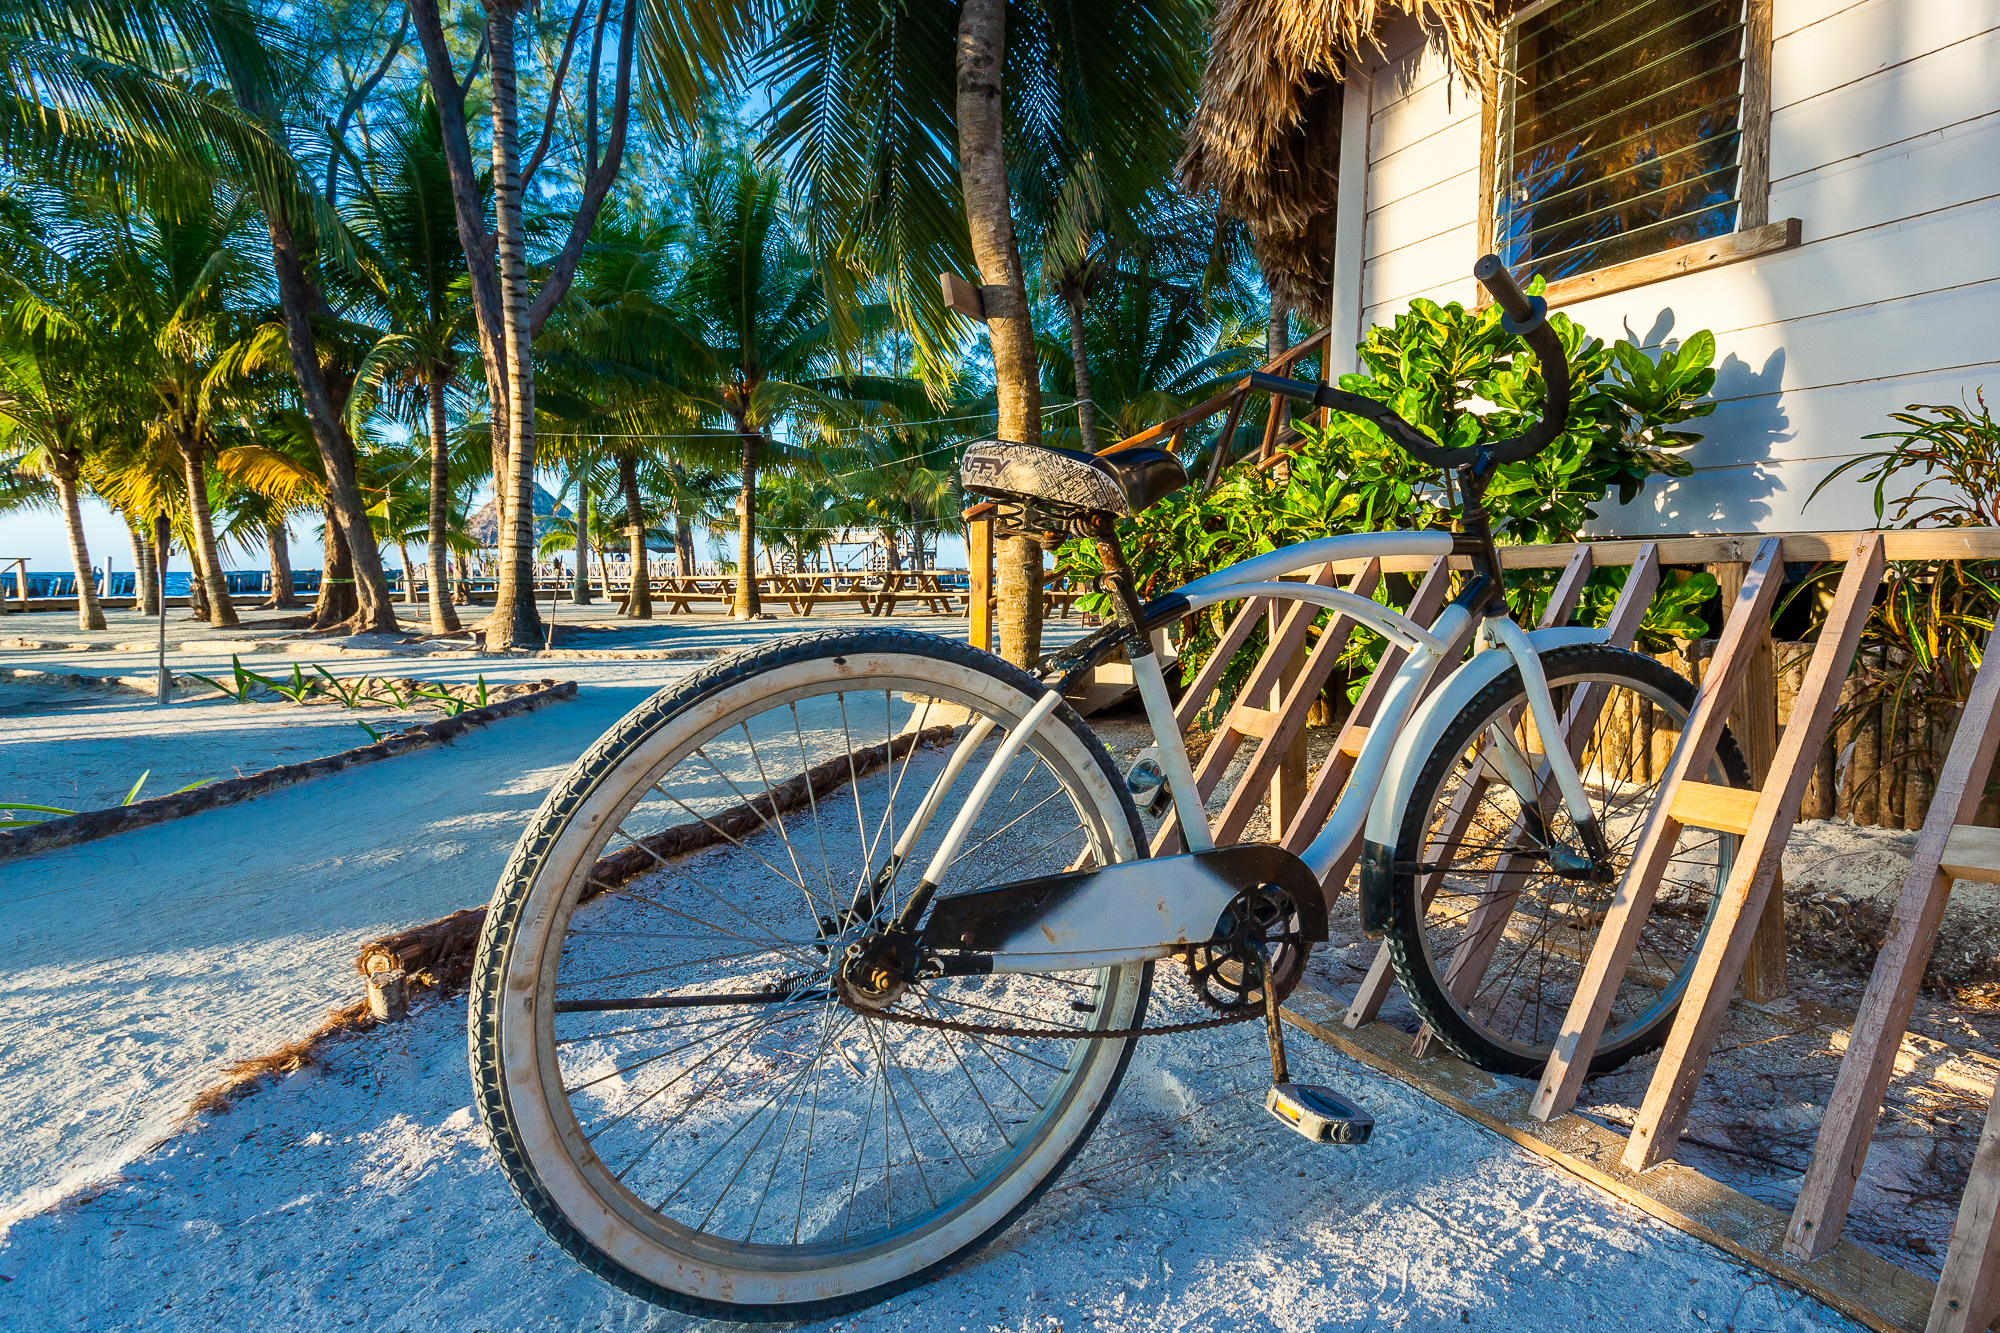 Bicycles - The best way to travel around our little private island is with our complimentary bikes. We have 10 brand new bikes on the island, just for your use!Included with any package purchase.